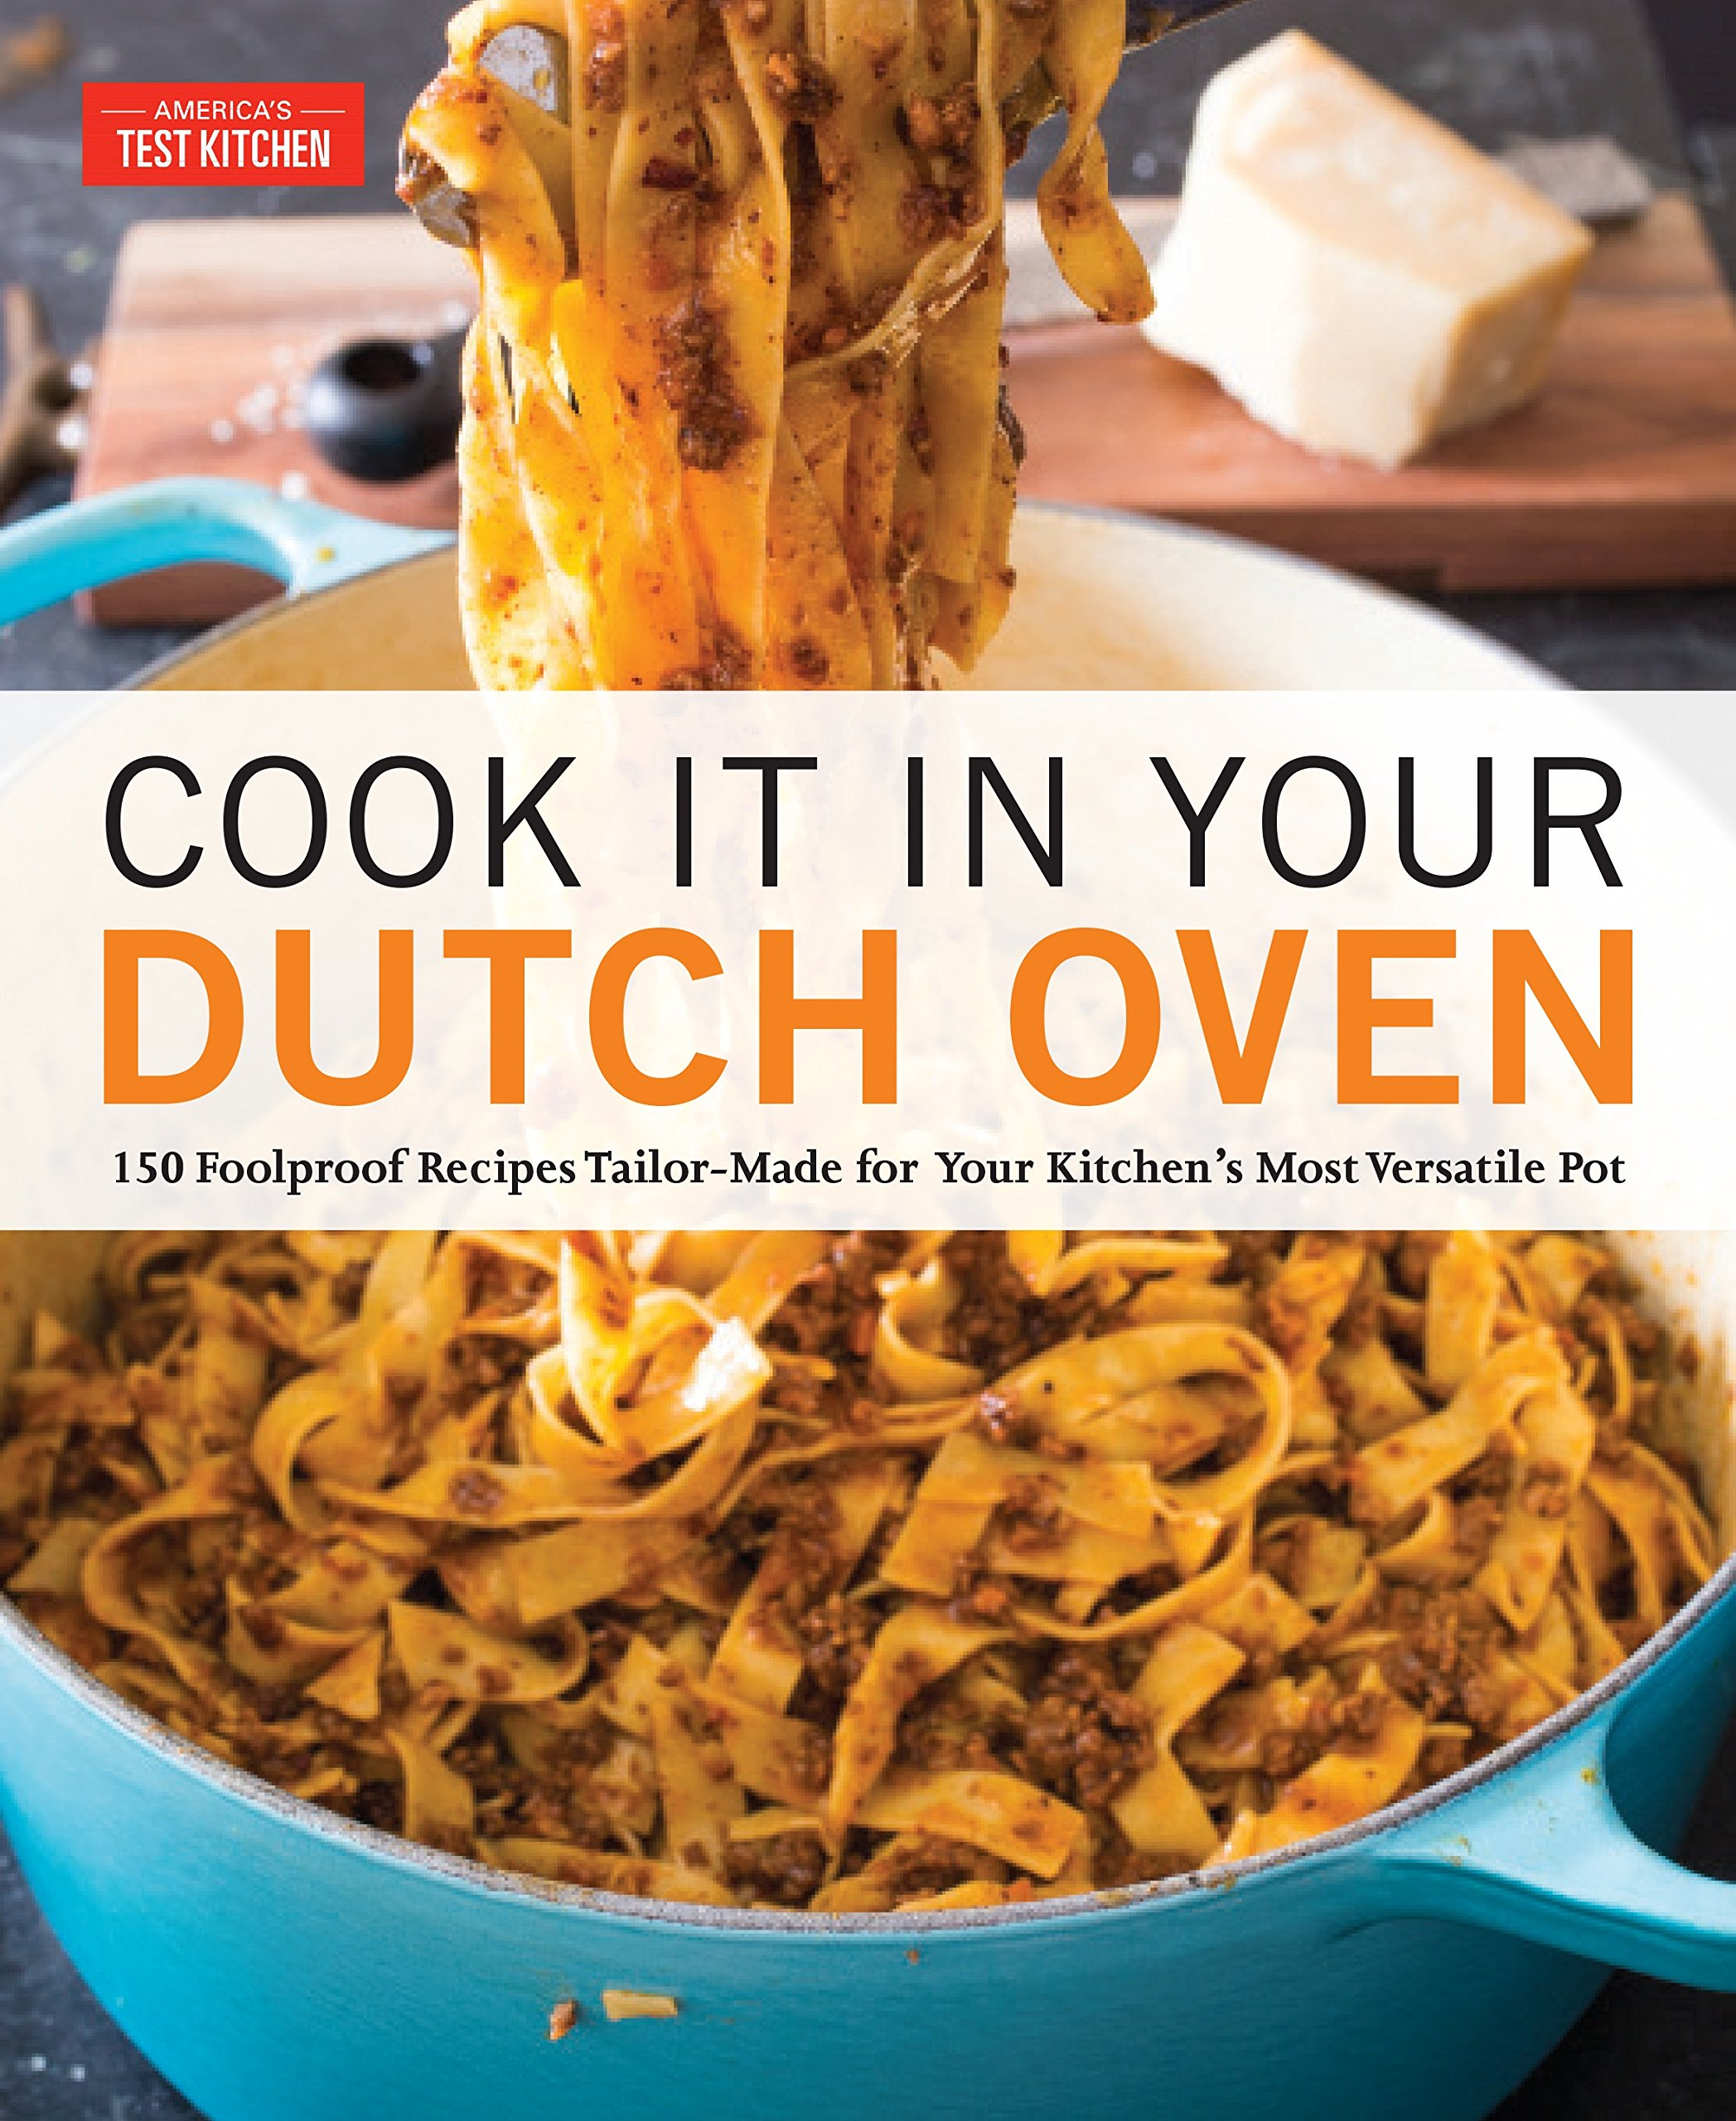 Cook It In Your Dutch Oven 150 Foolproof Recipes Tailor Made For